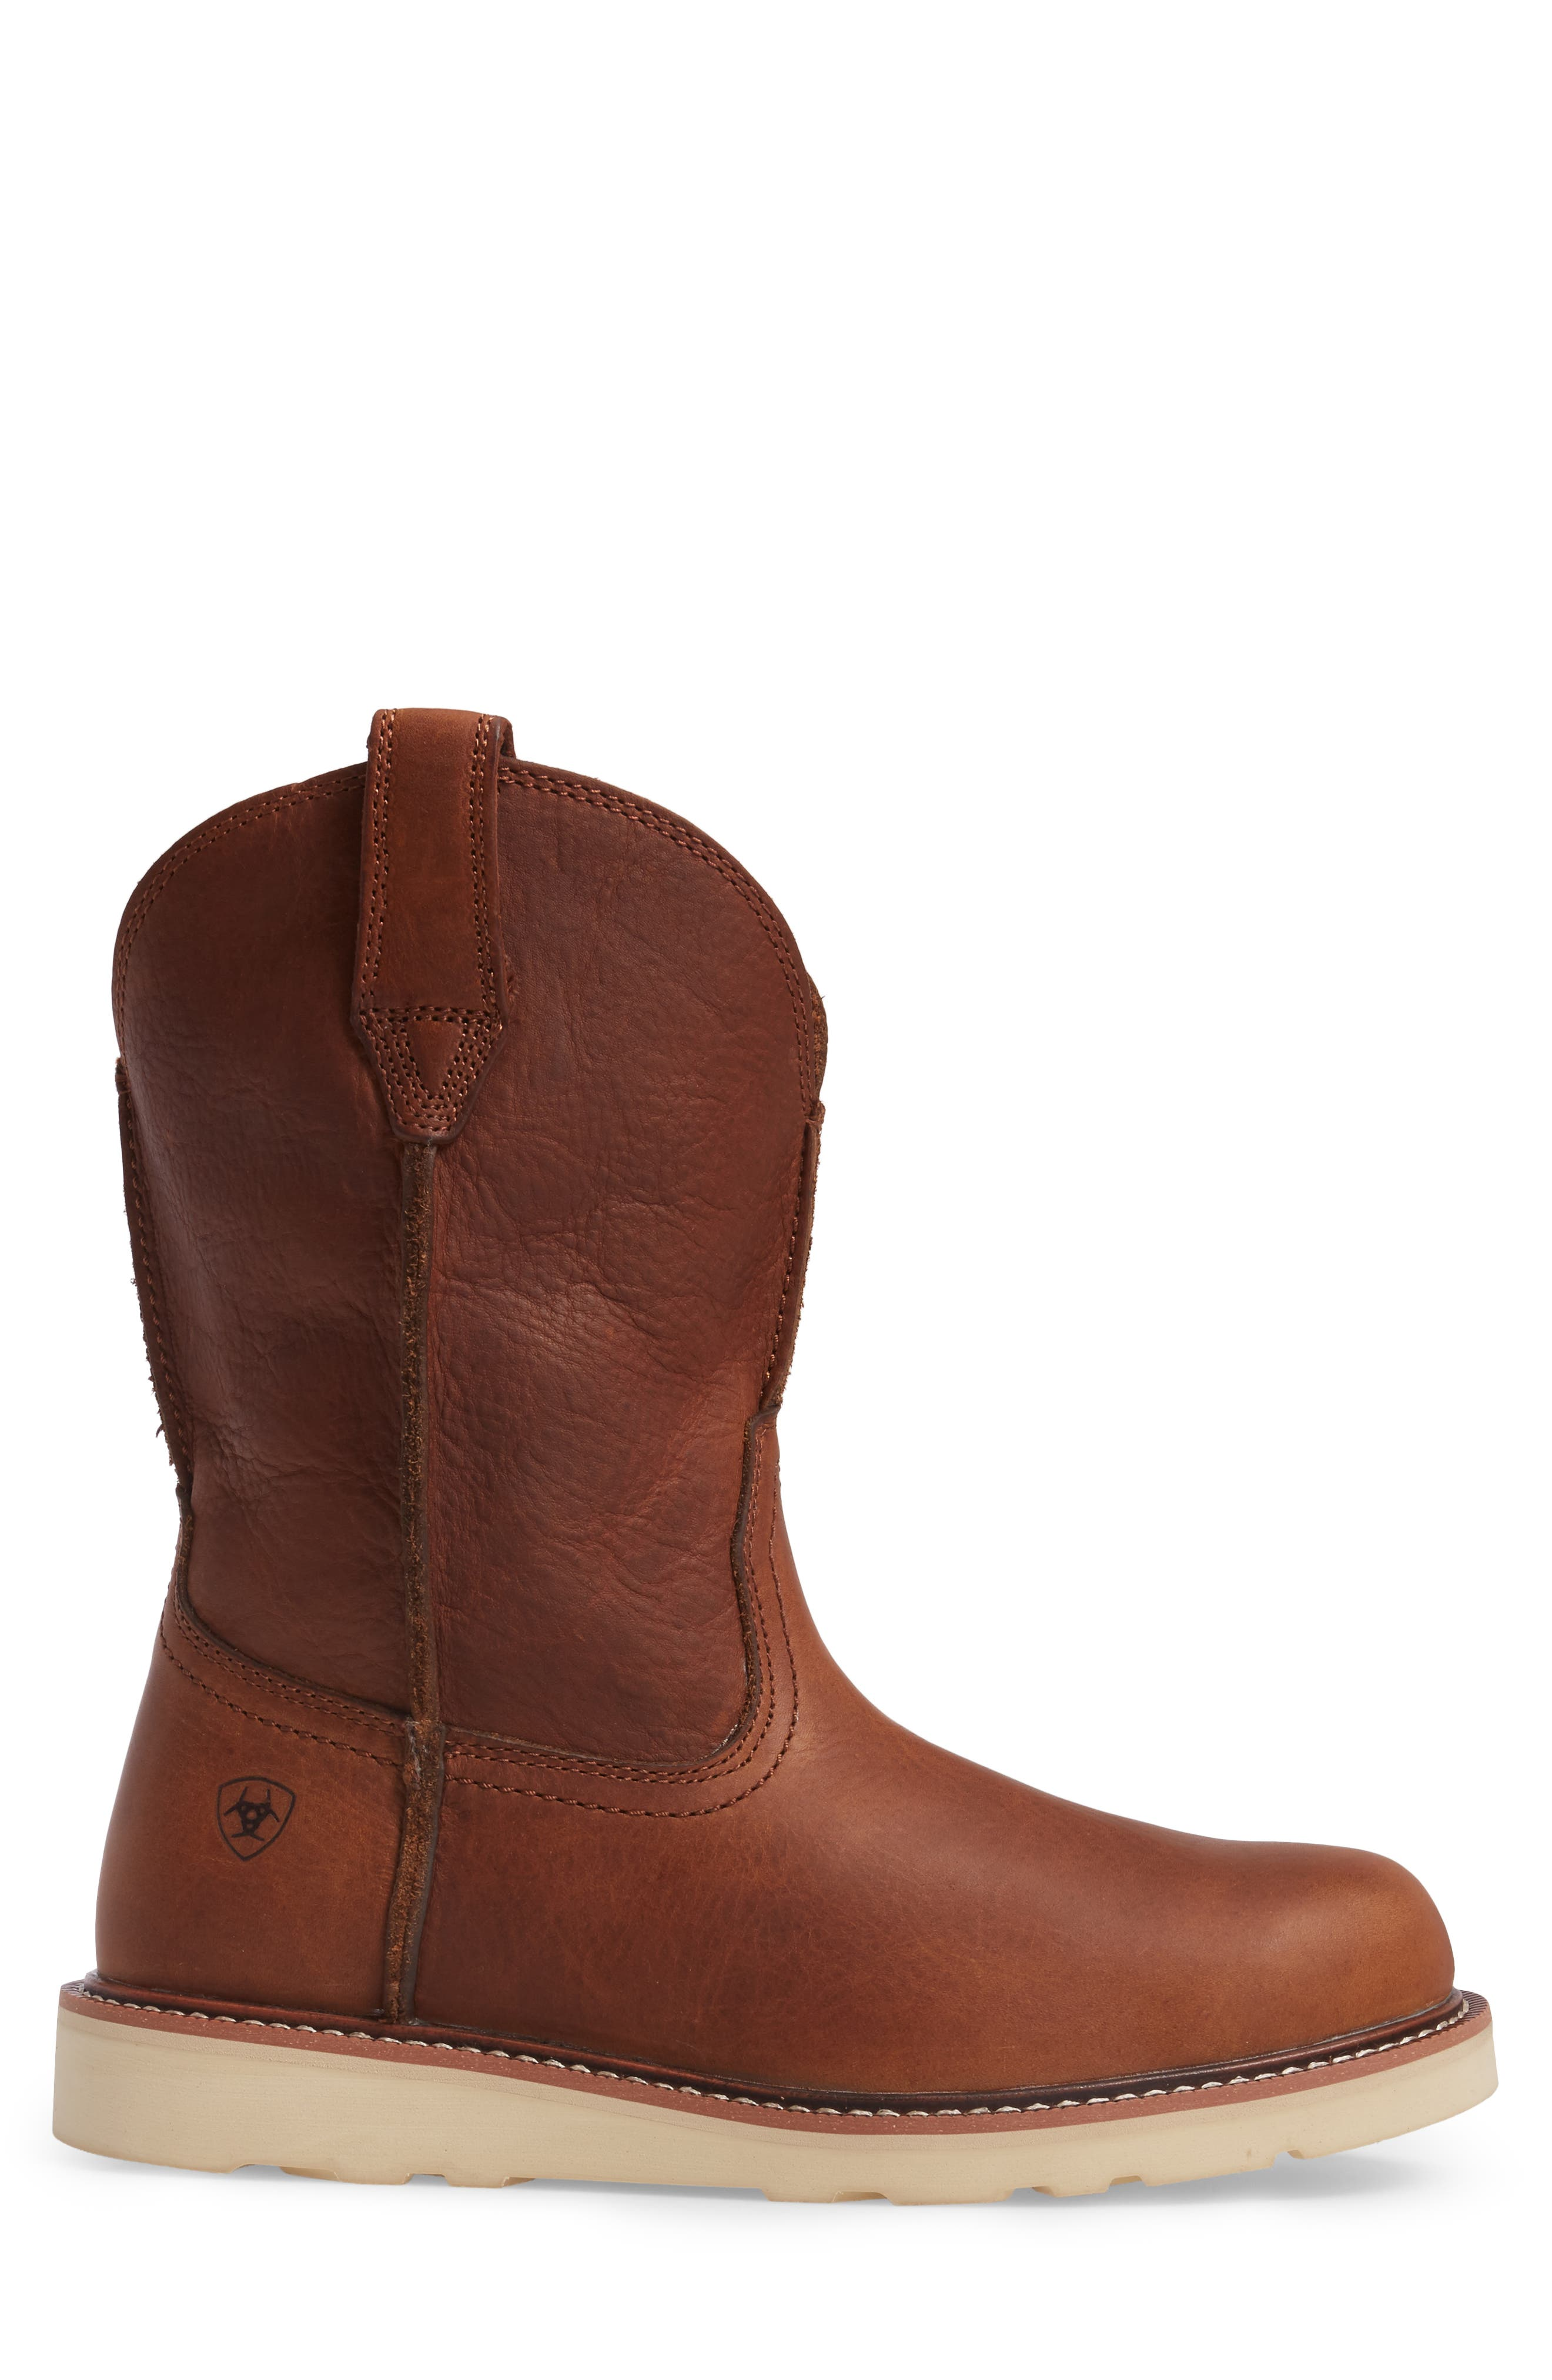 Rambler Boot,                             Alternate thumbnail 3, color,                             BROWN LEATHER